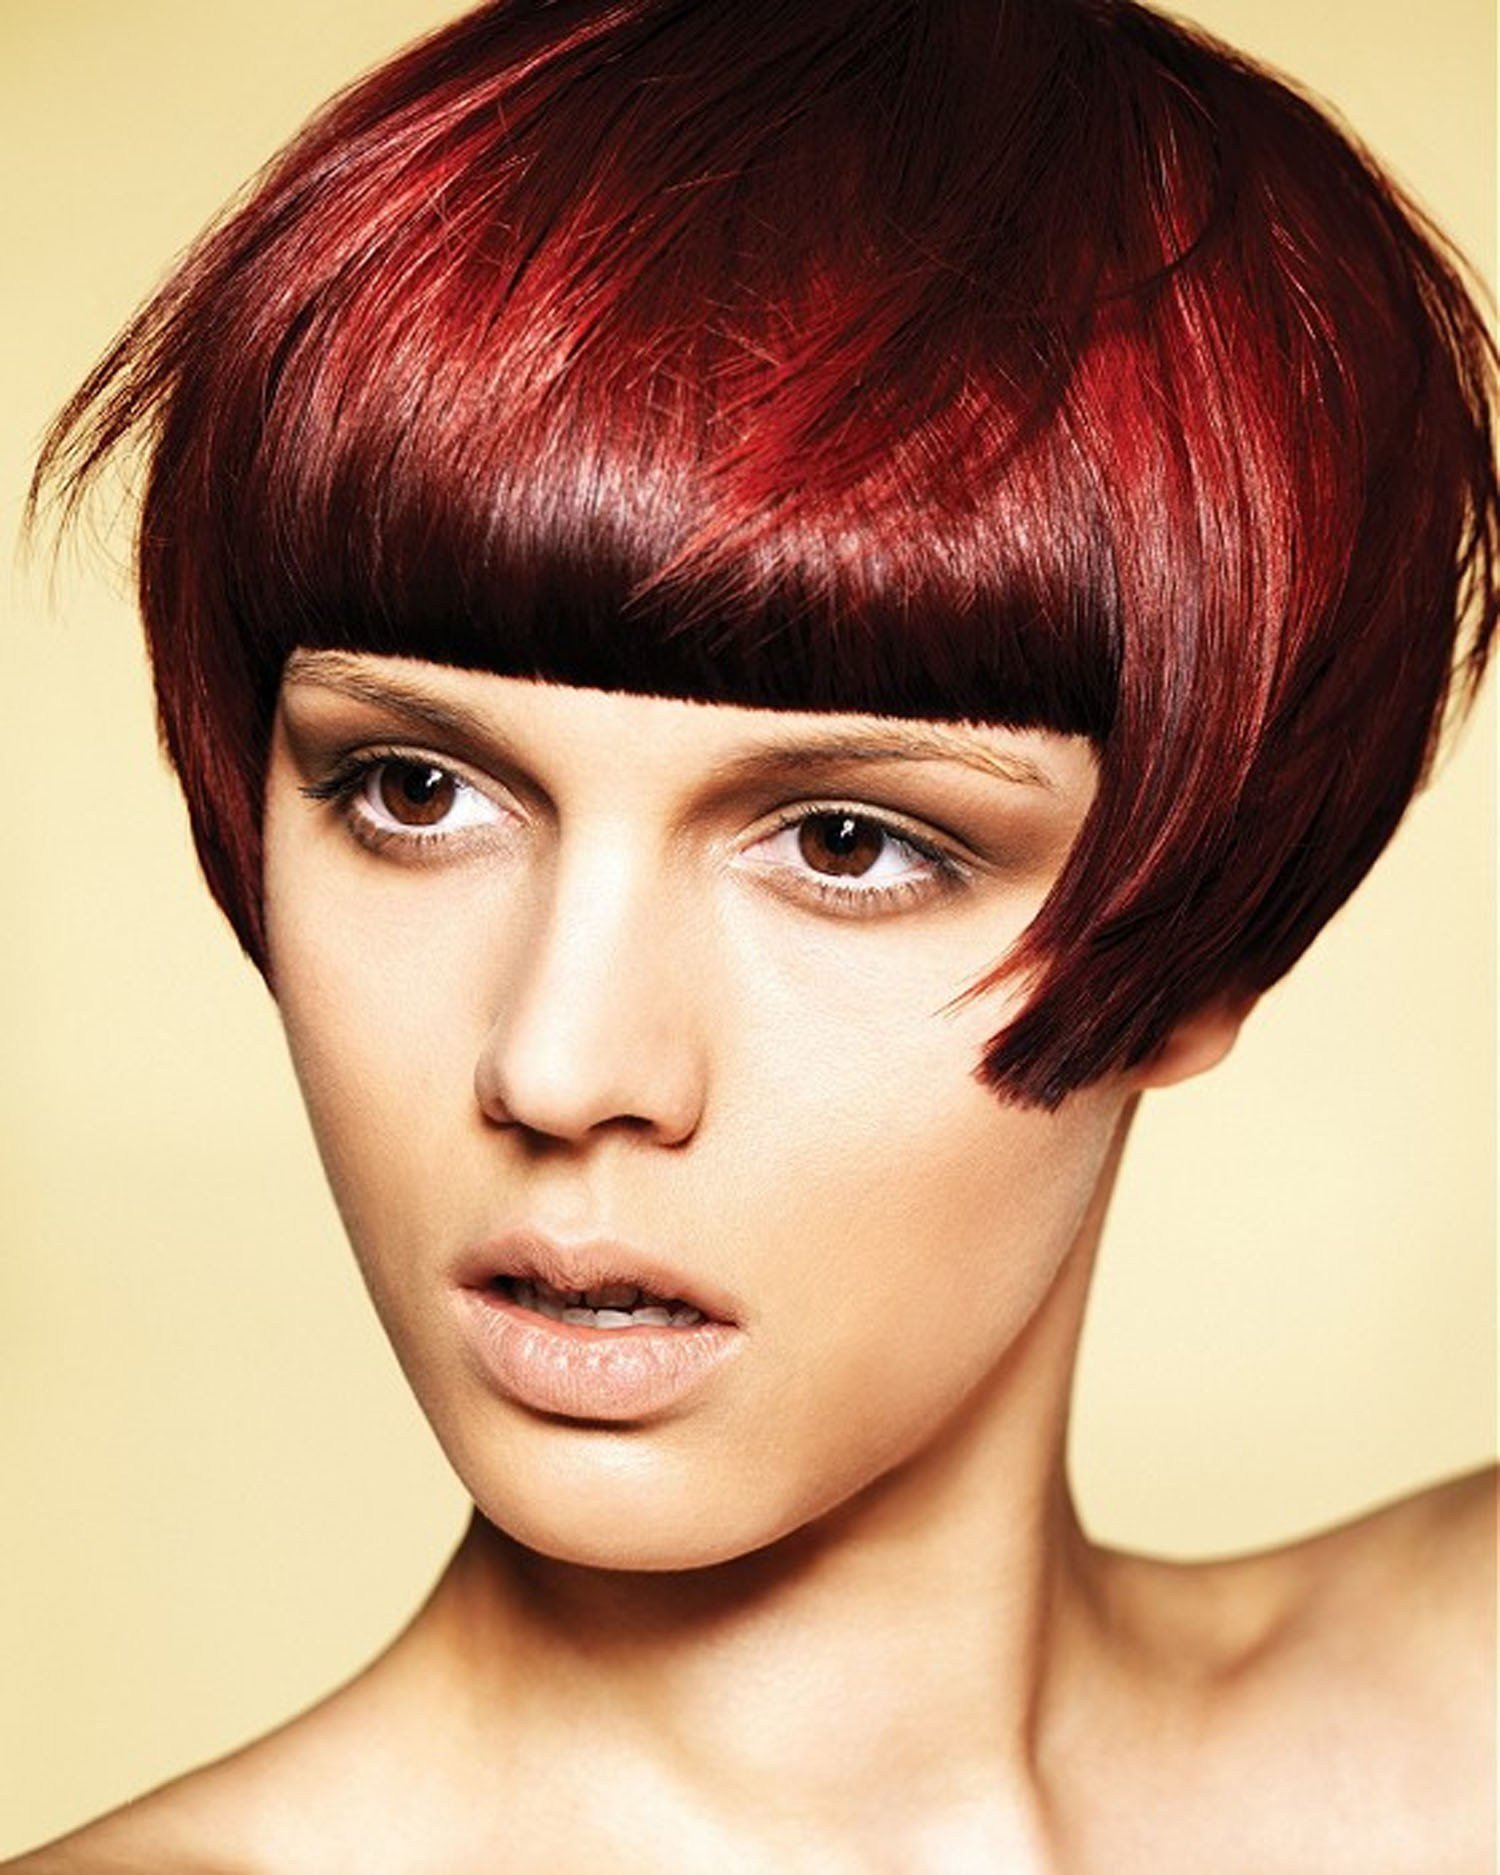 New Hairstyle Ideas For Growing Out Fringe Ideas With Pictures Original 1024 x 768